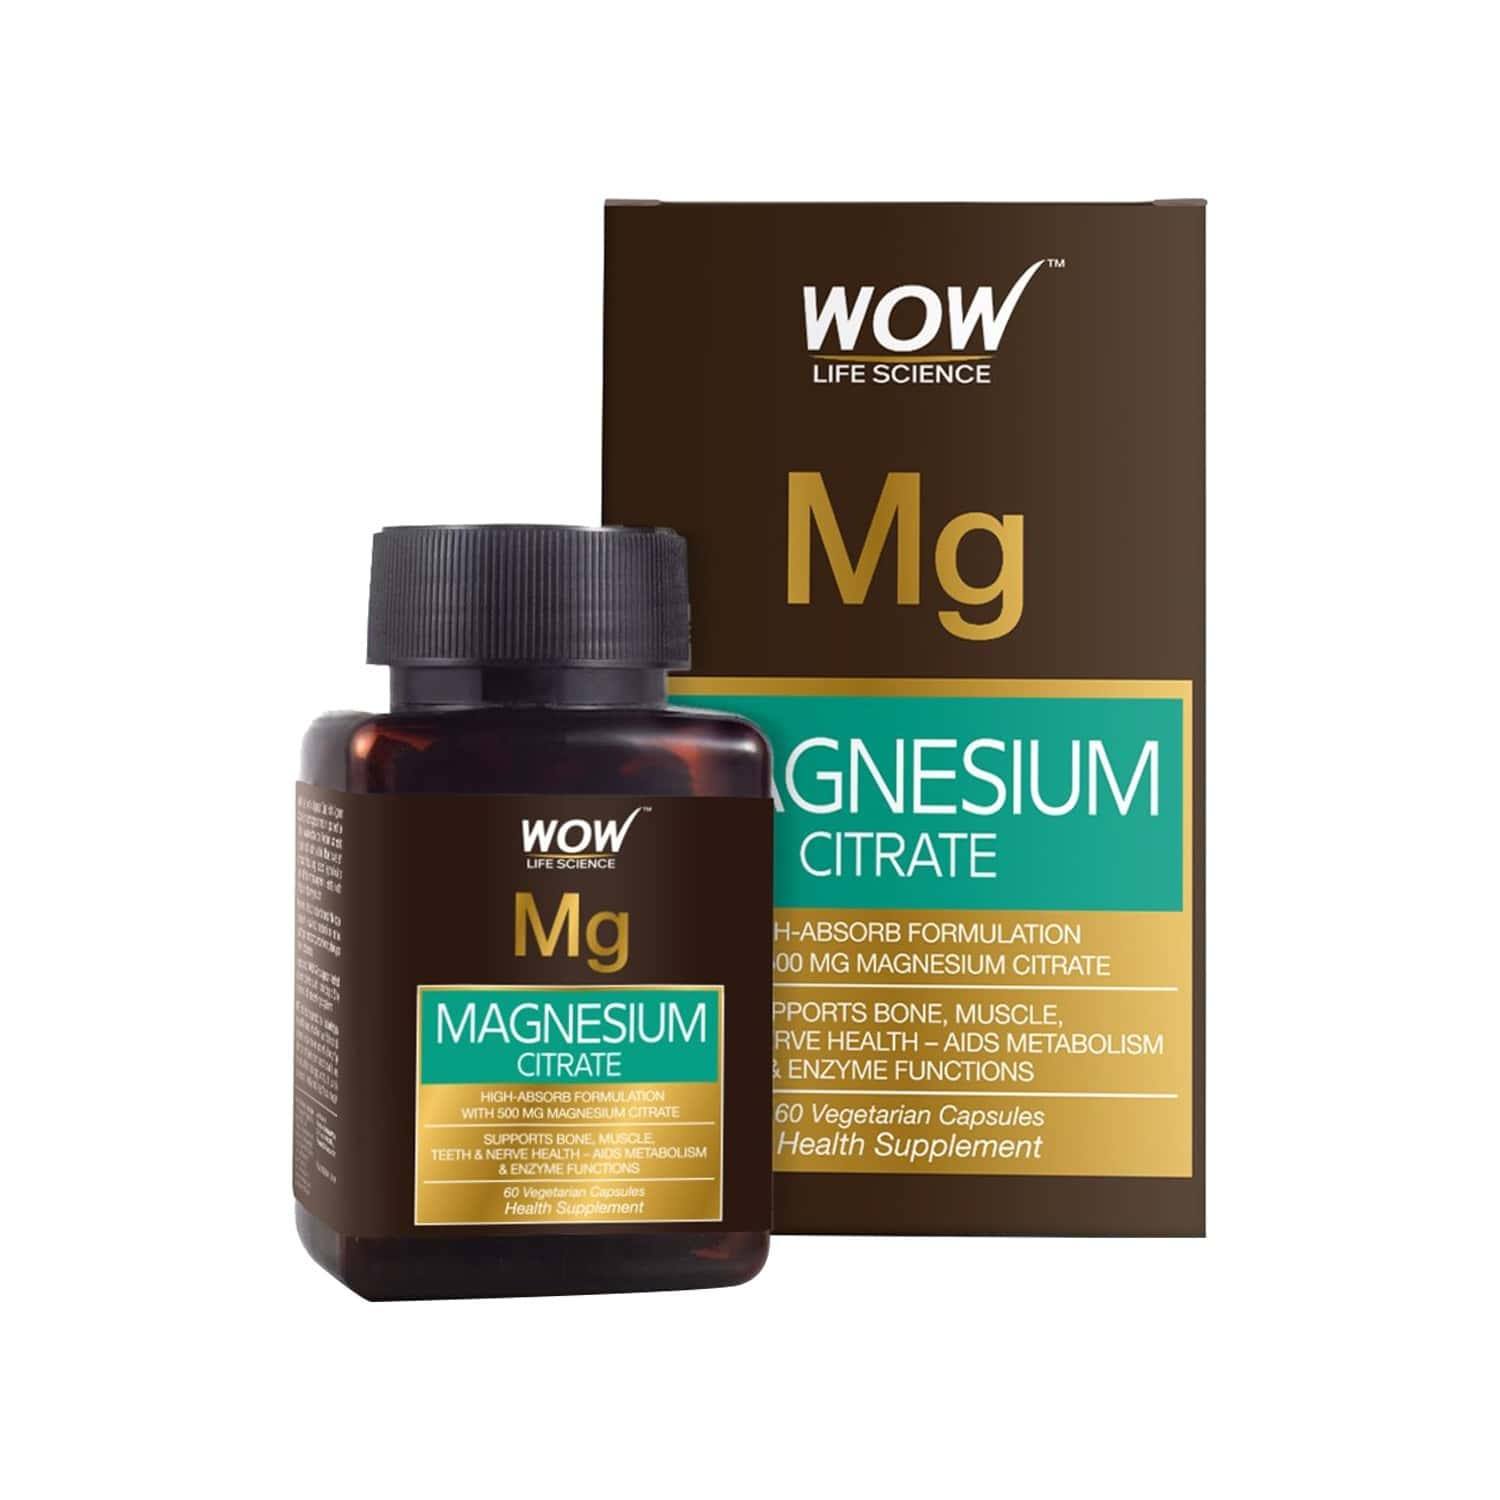 Wow Life Science Magnesium Citrate 500 Mg - 60 Vegetarian Capsules